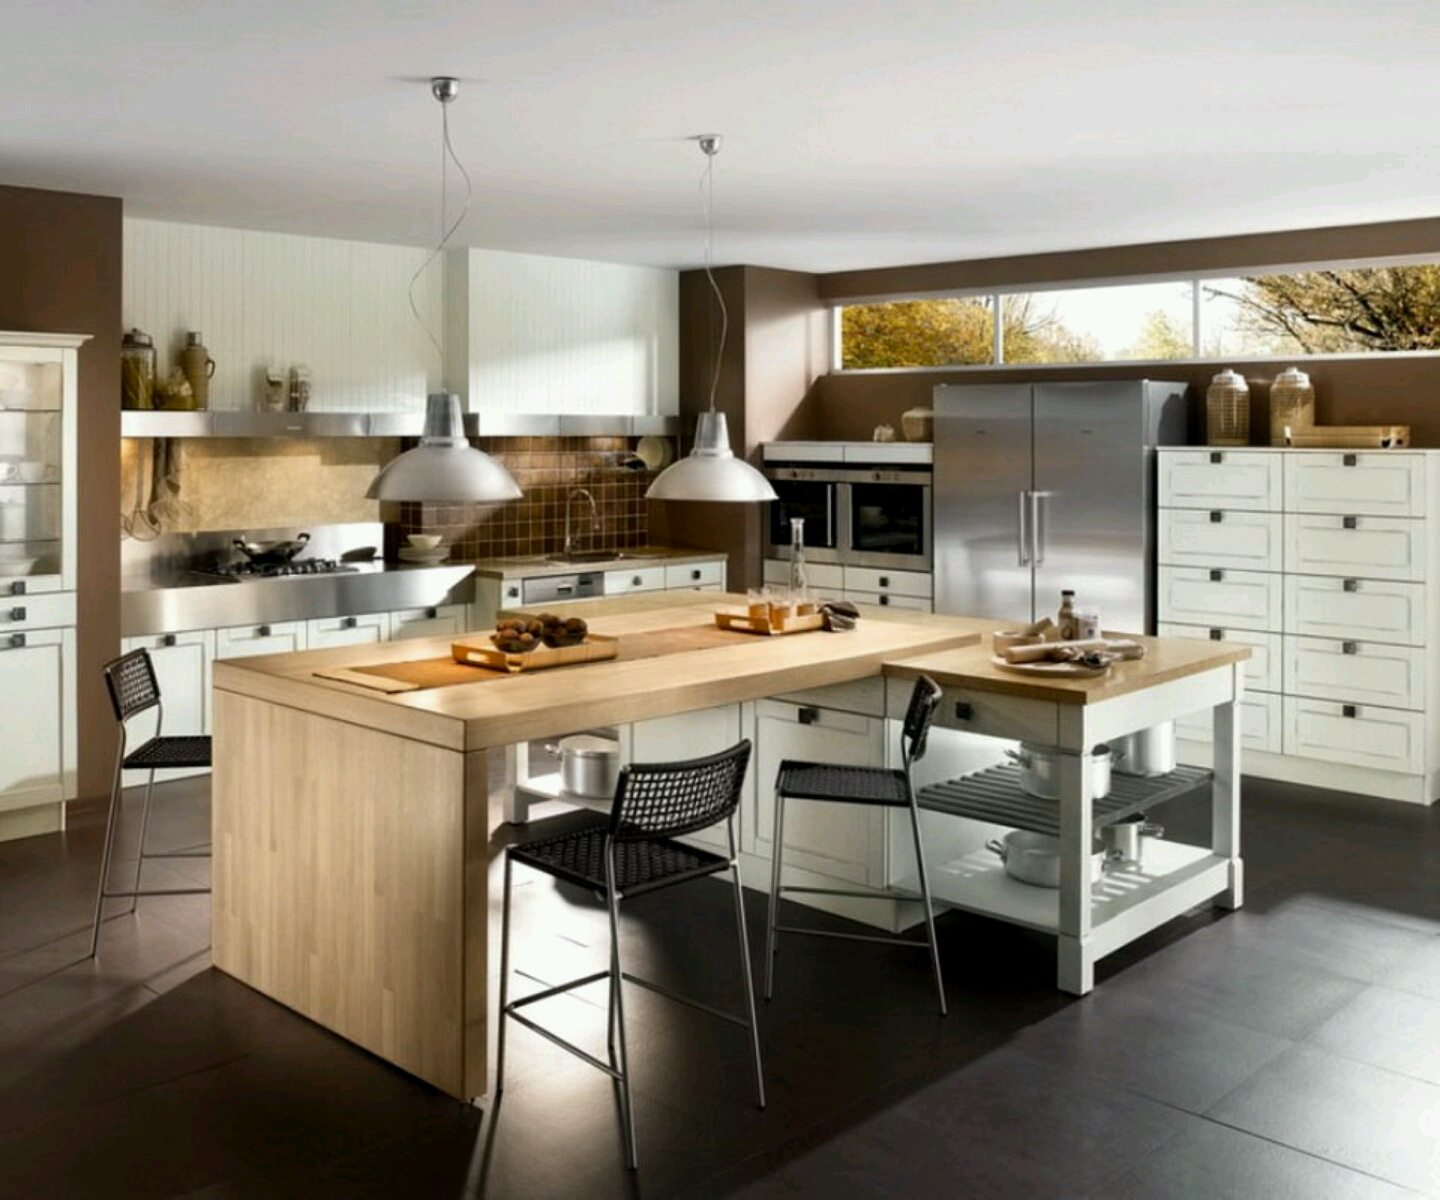 Pictures Of Modern Kitchen: New Home Designs Latest.: Modern Kitchen Designs Ideas